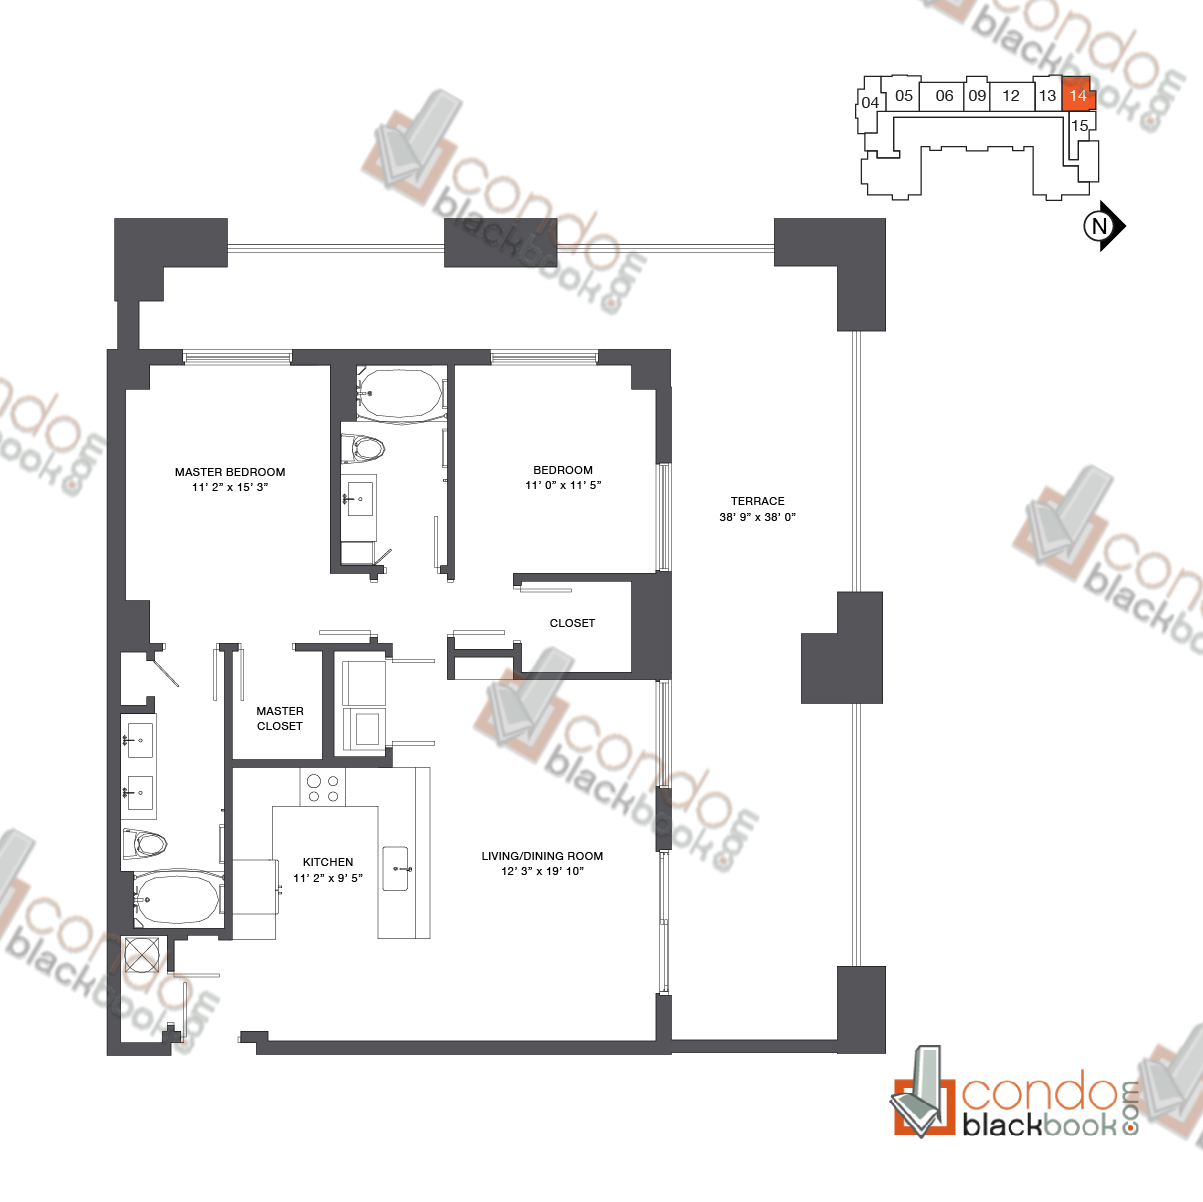 Floor plan for Nine at Mary Brickell Village Brickell Miami, model Residence 11_14, line 14, 2/2 bedrooms, 1,173 sq ft